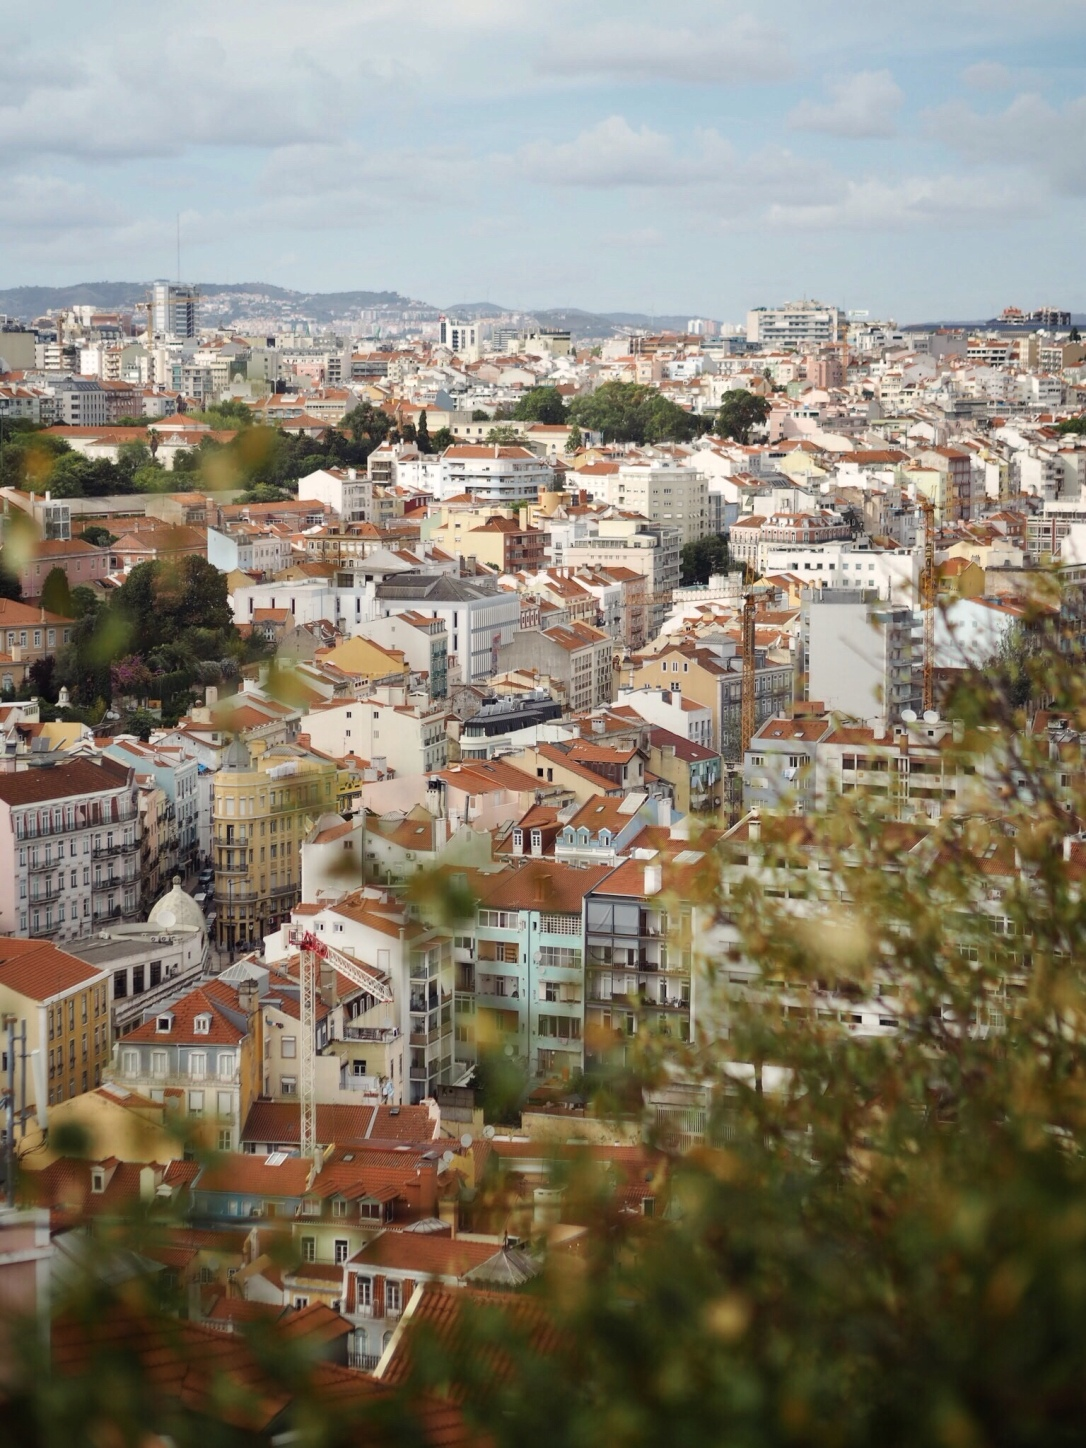 Miradouro - Viewpoint in Lisbon